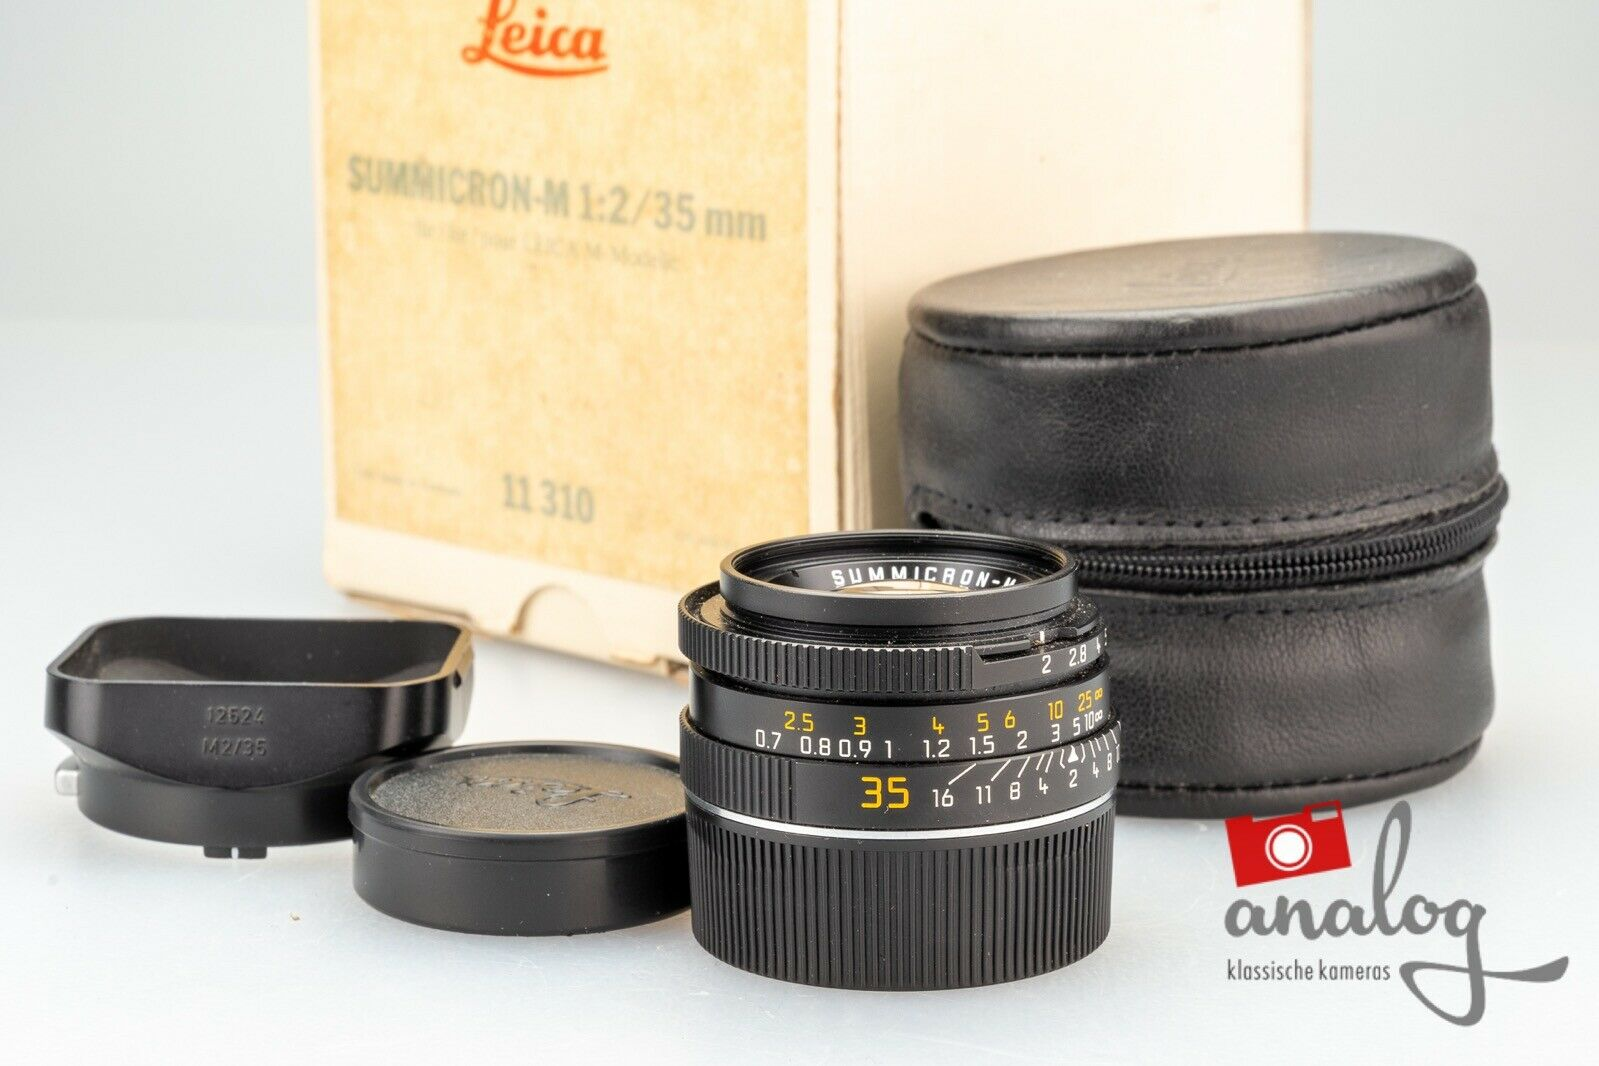 """Leica Summicron-M 35mm 2.0 E39 (IV) - """"King of Bokeh"""" - 11310 - Made in Germany"""